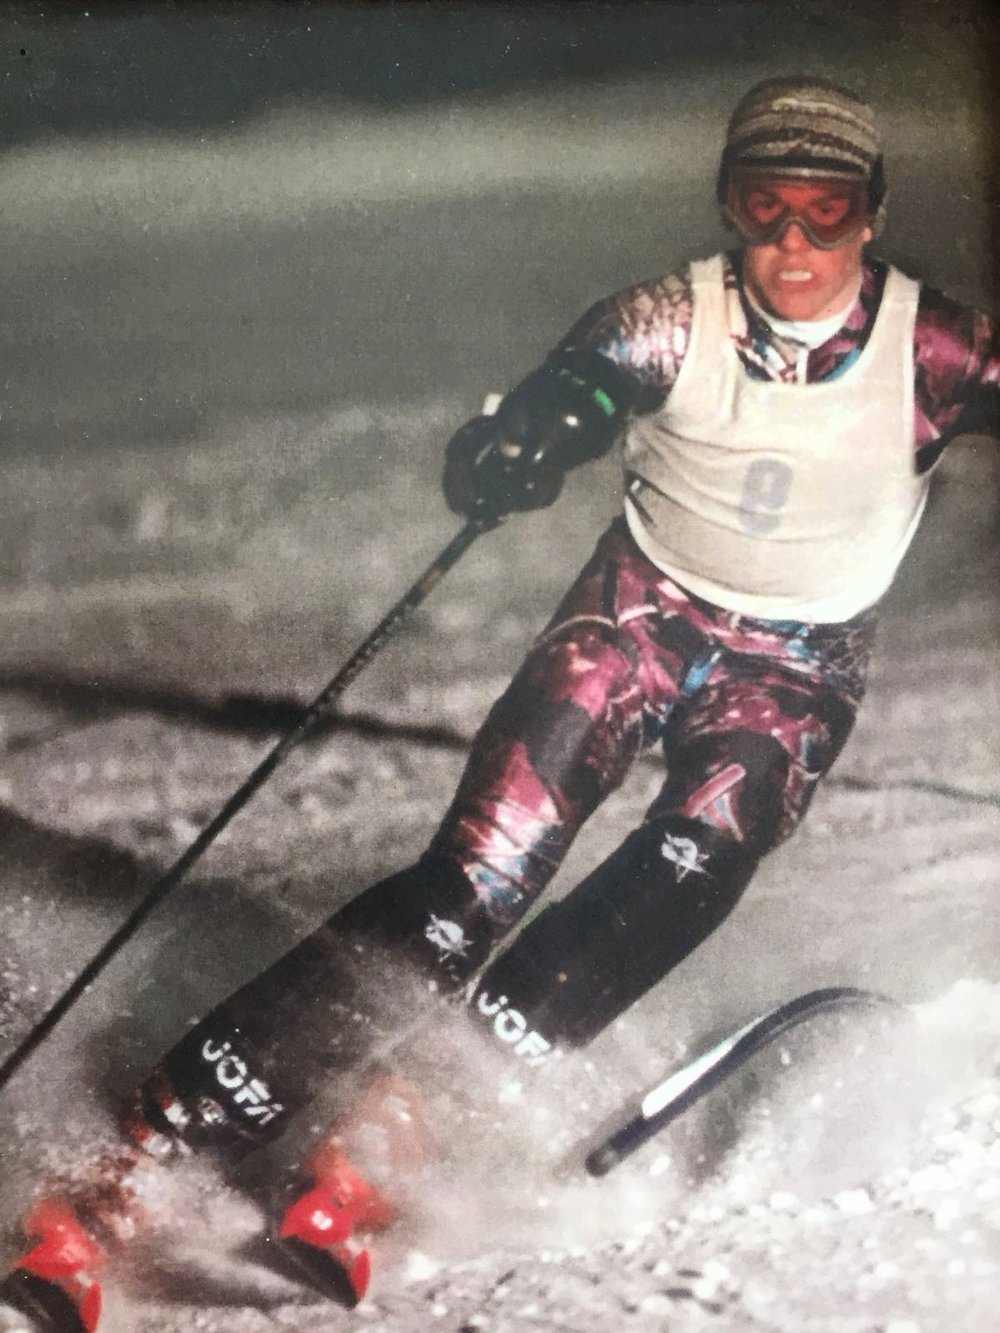 Brent-skiing-1.jpeg